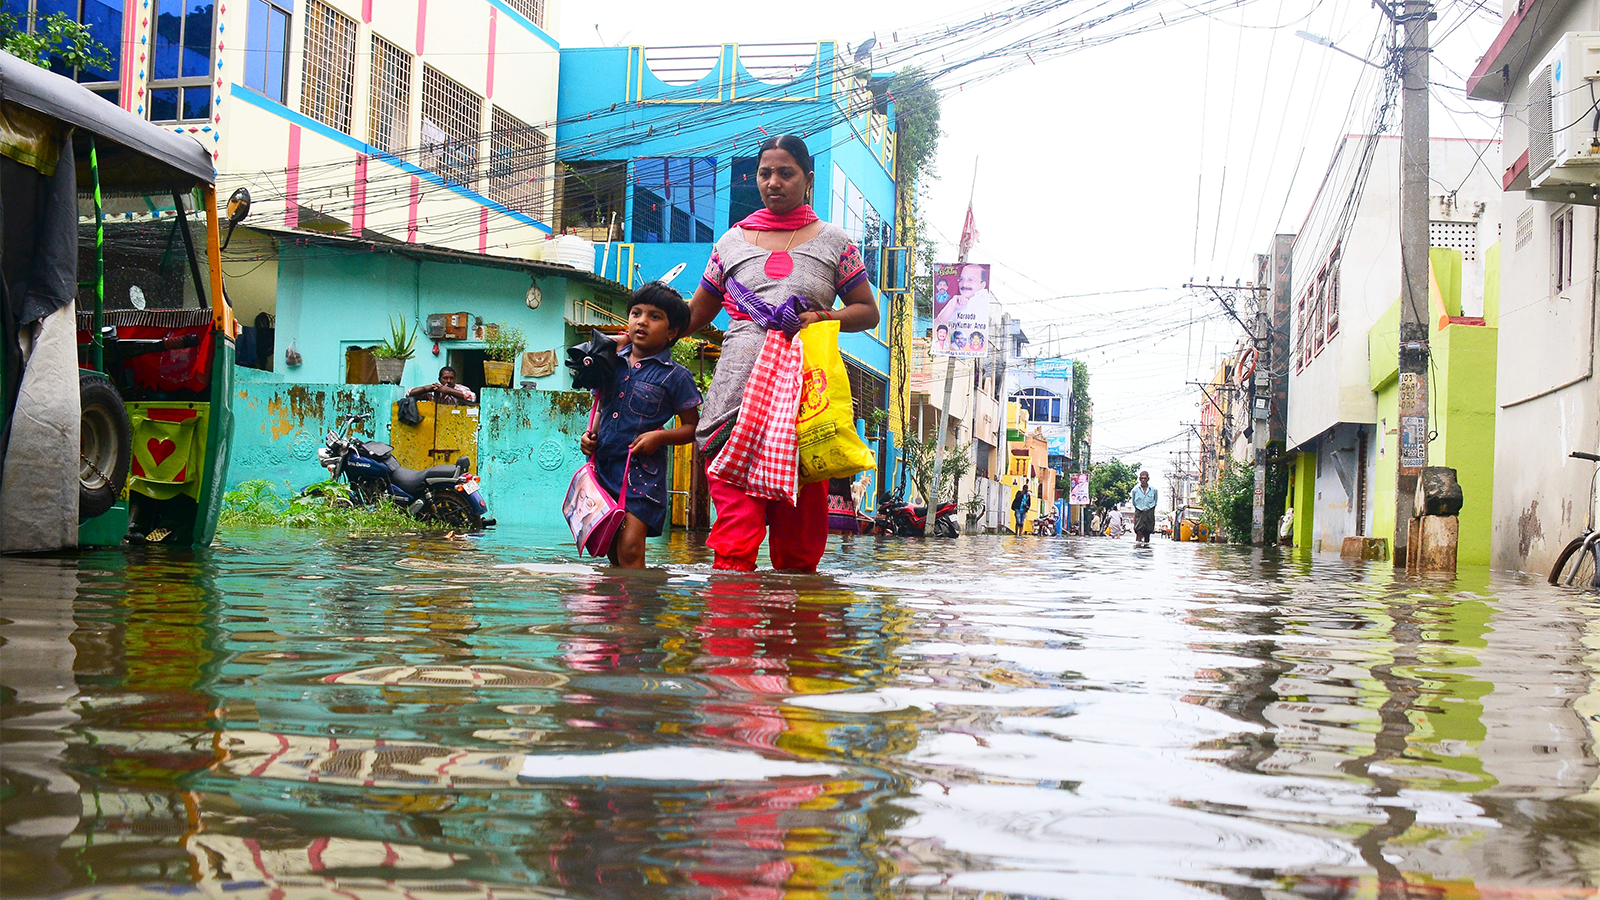 2018 was an 'almost drought' year. Kerala, however, received excess rainfall